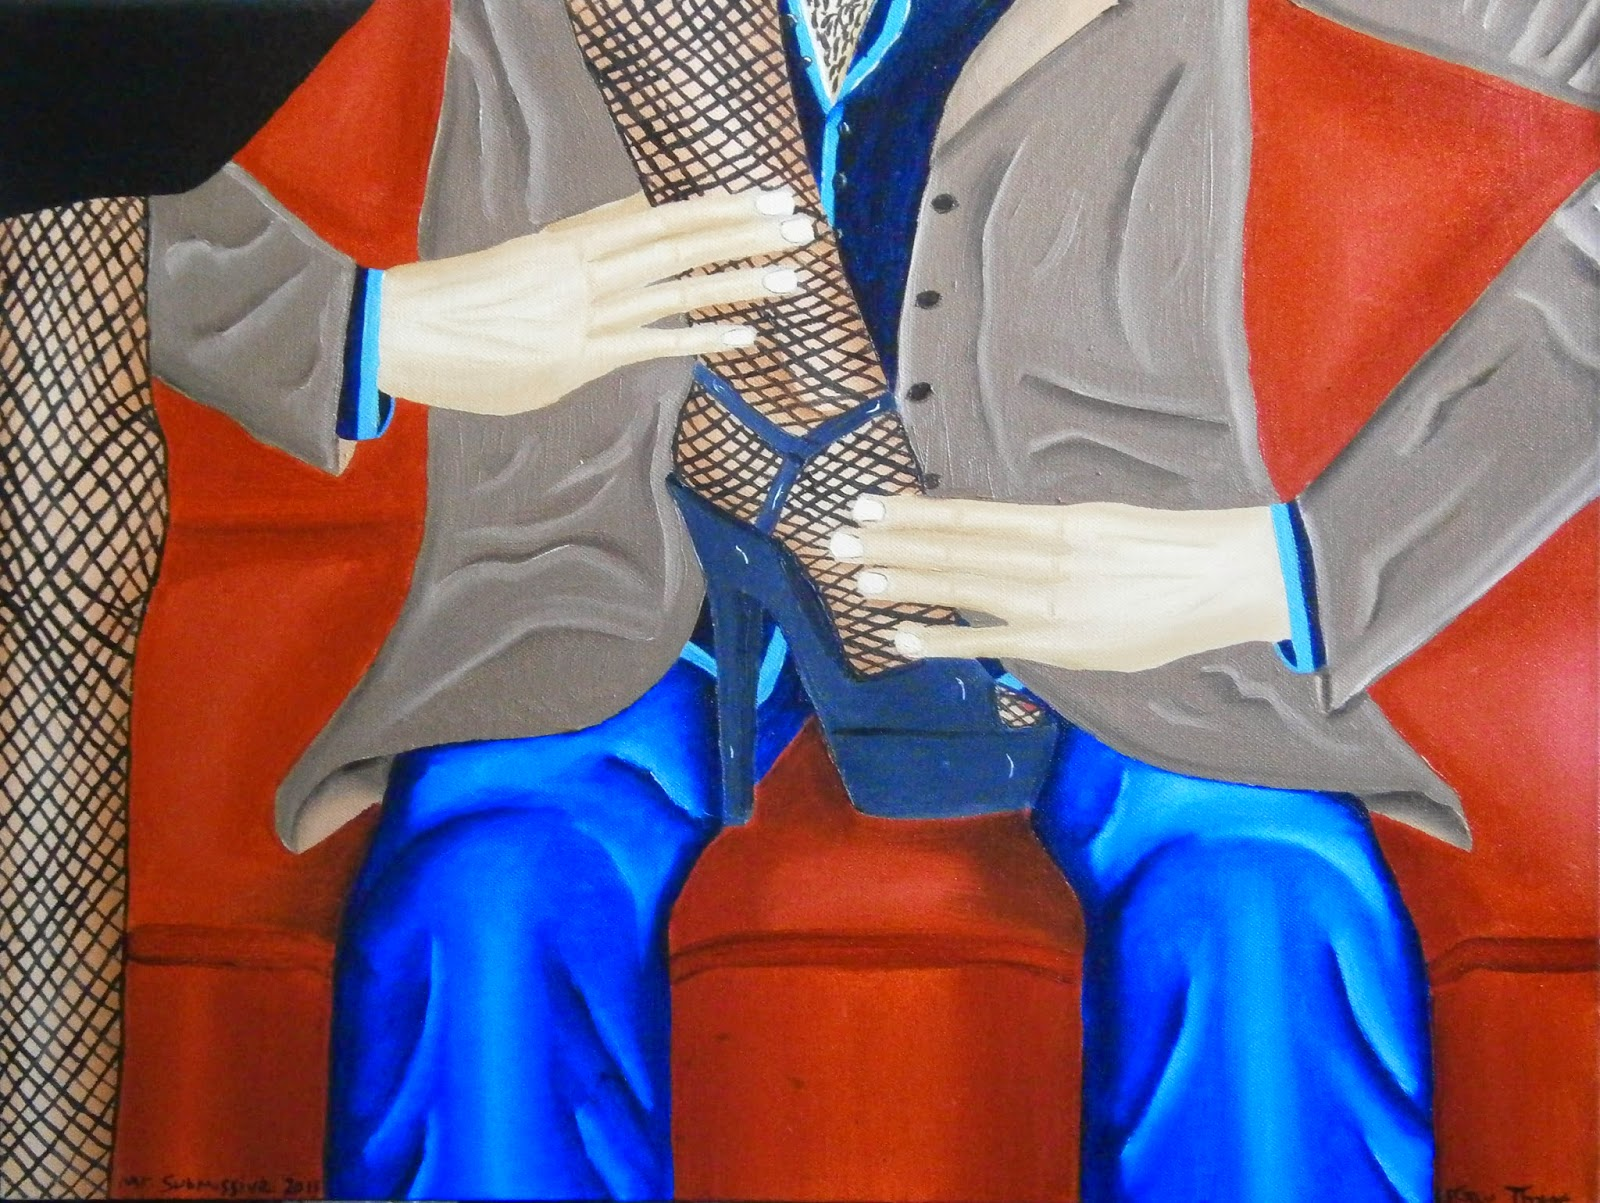 A woman with her foot between a man's legs whilst he's sitting on a couch